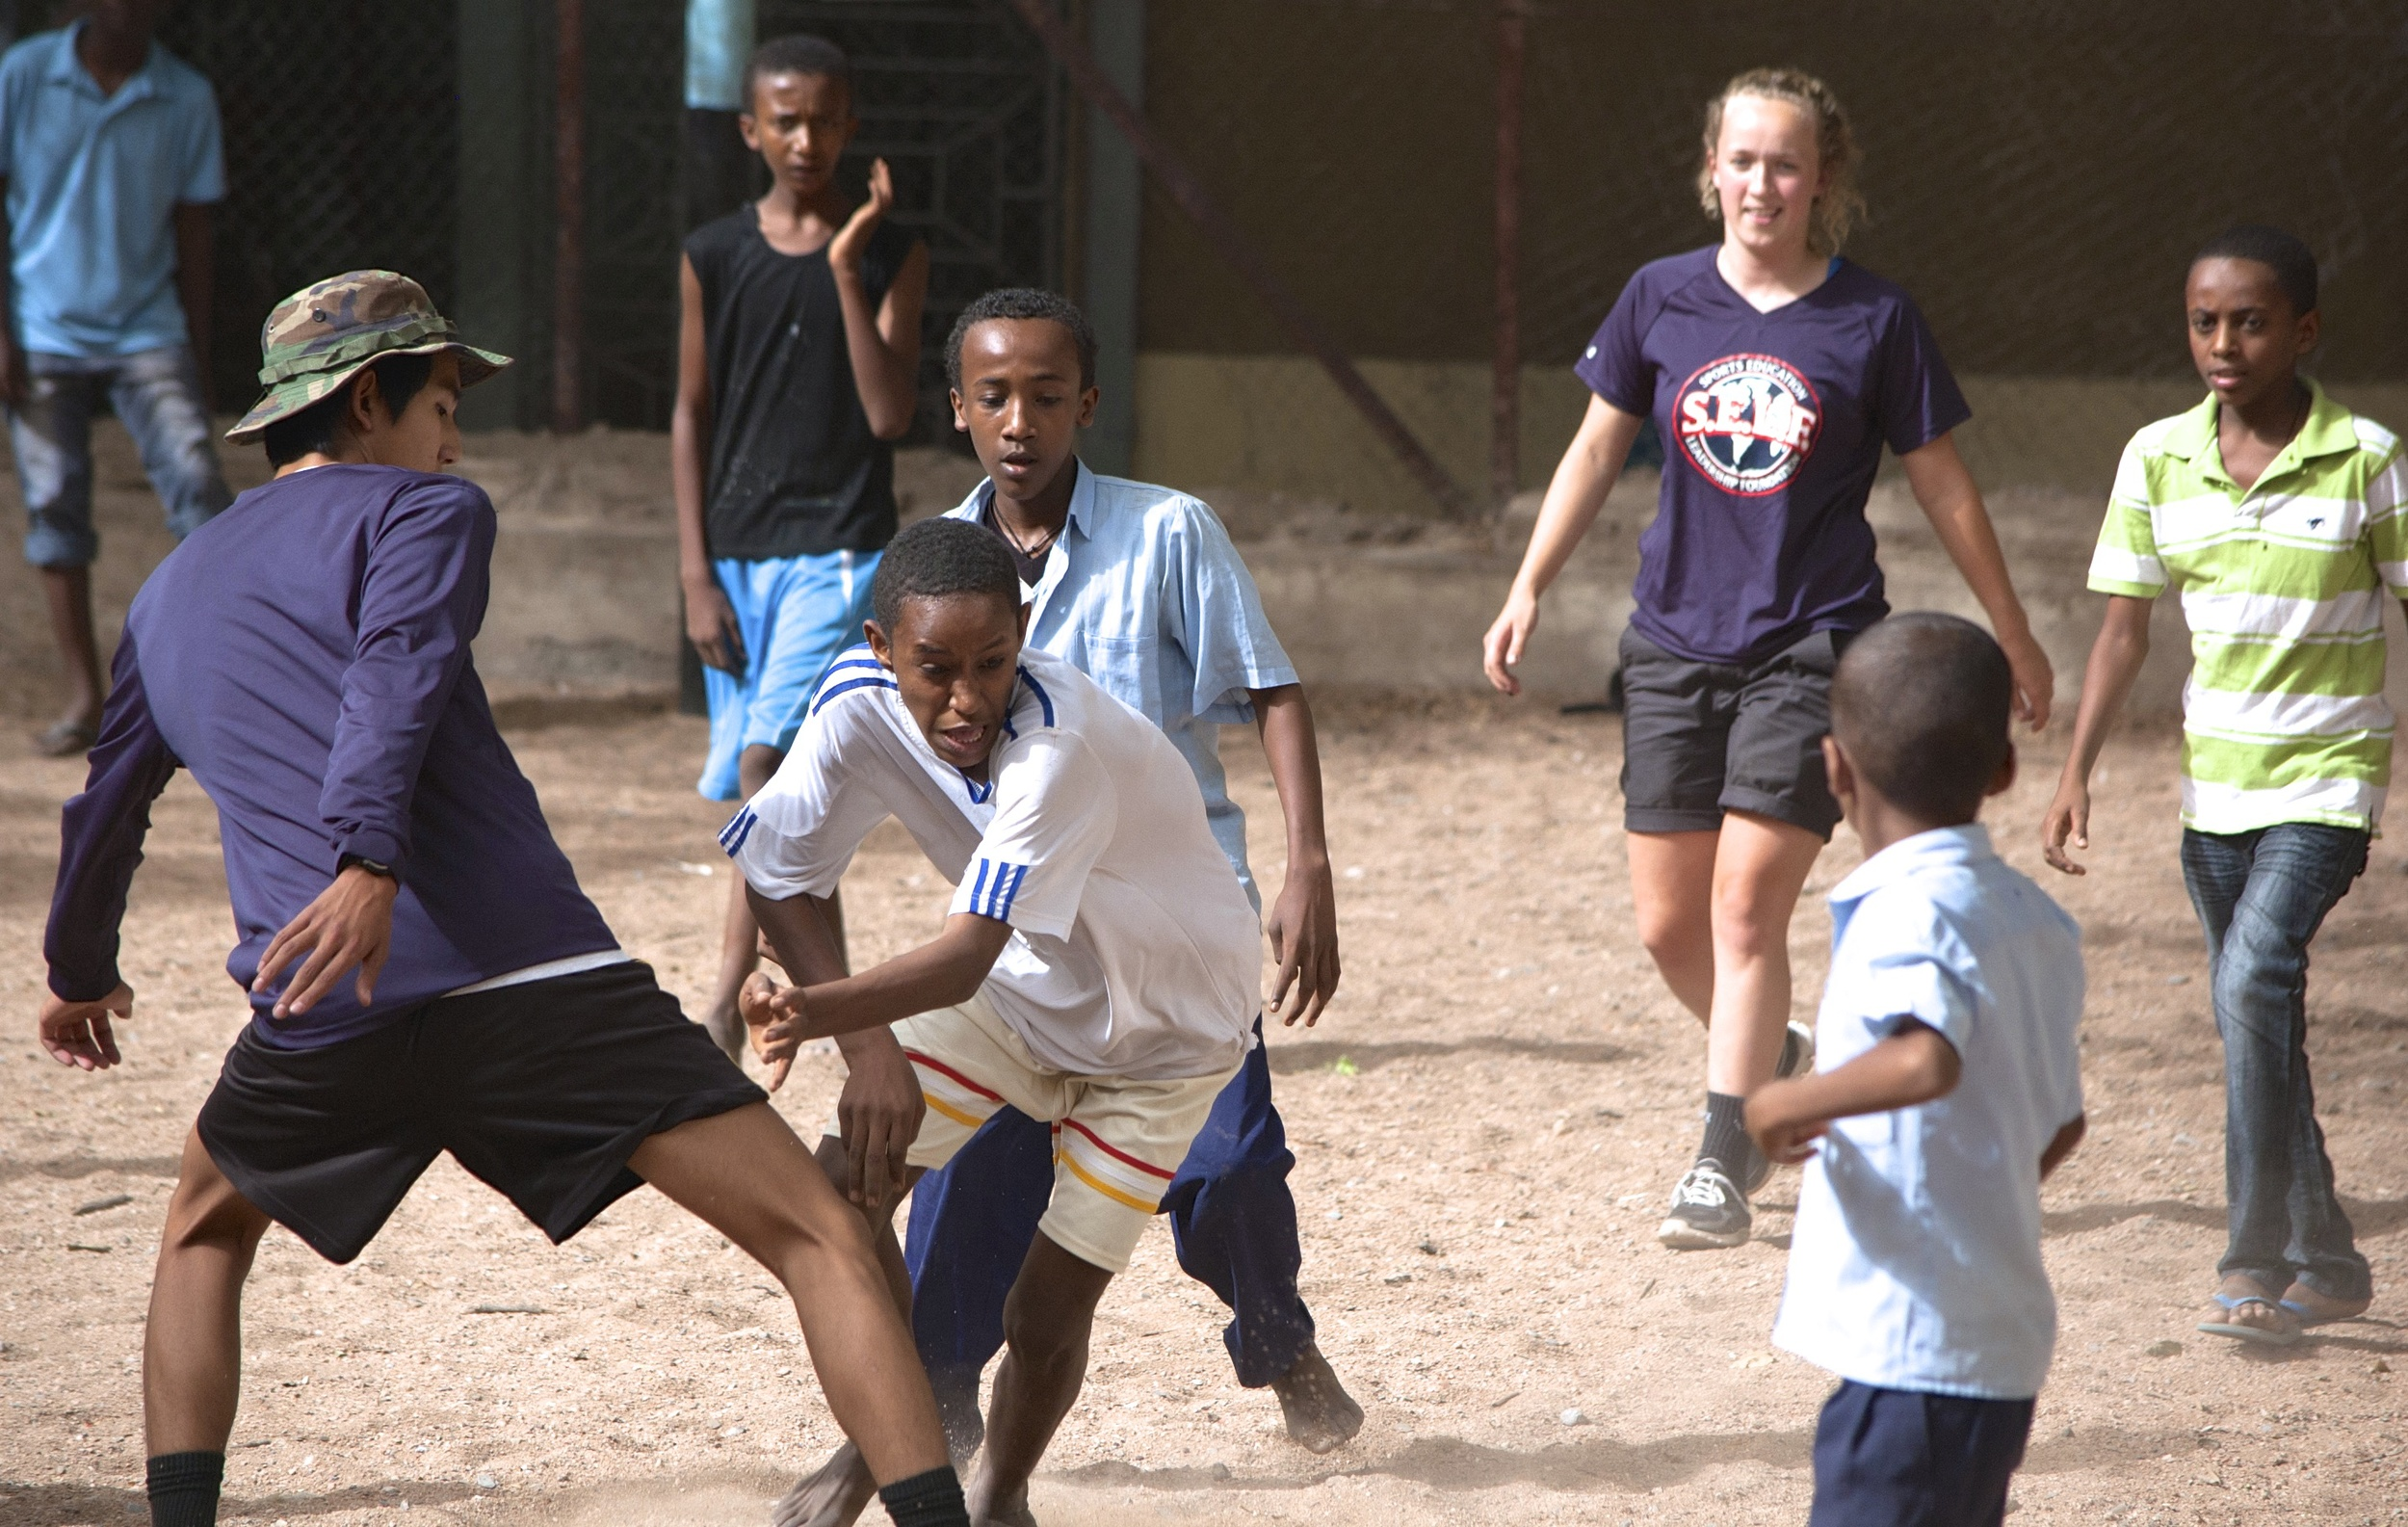 Churl and Lyric playing soccer with their group